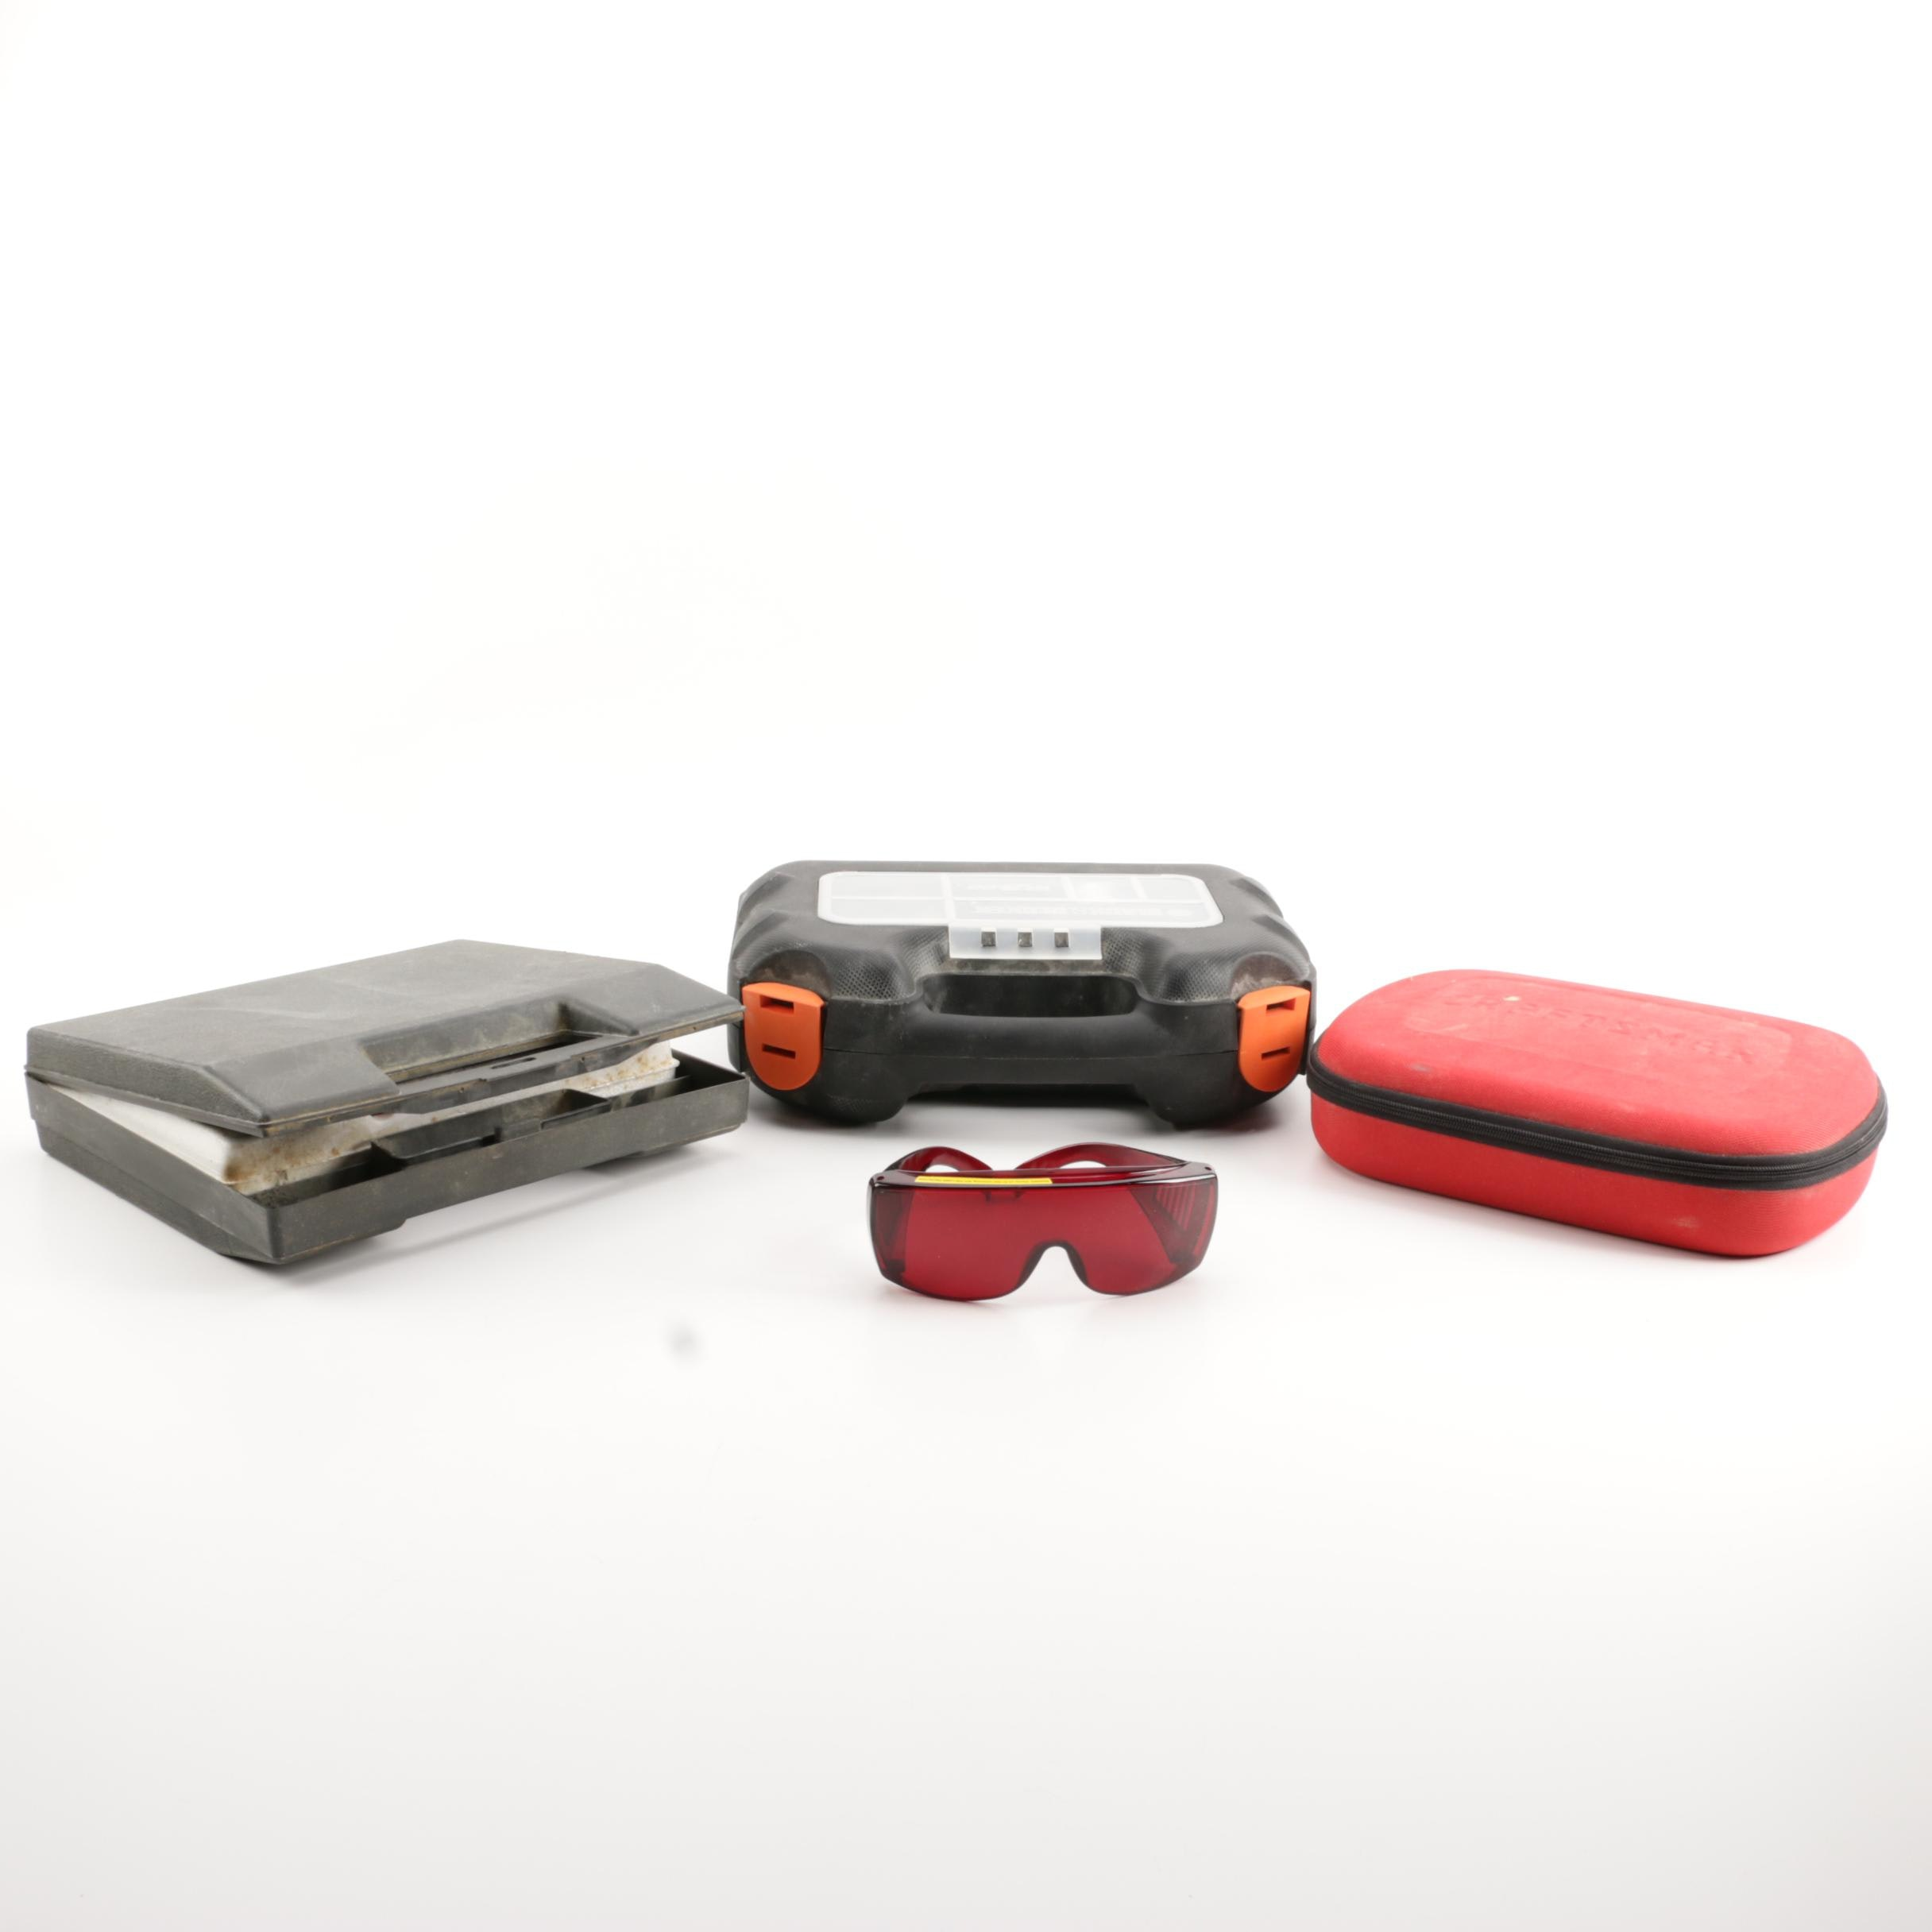 Black & Decker Wizard Rotary Tool, Versapak Battery Charger and Other Tools